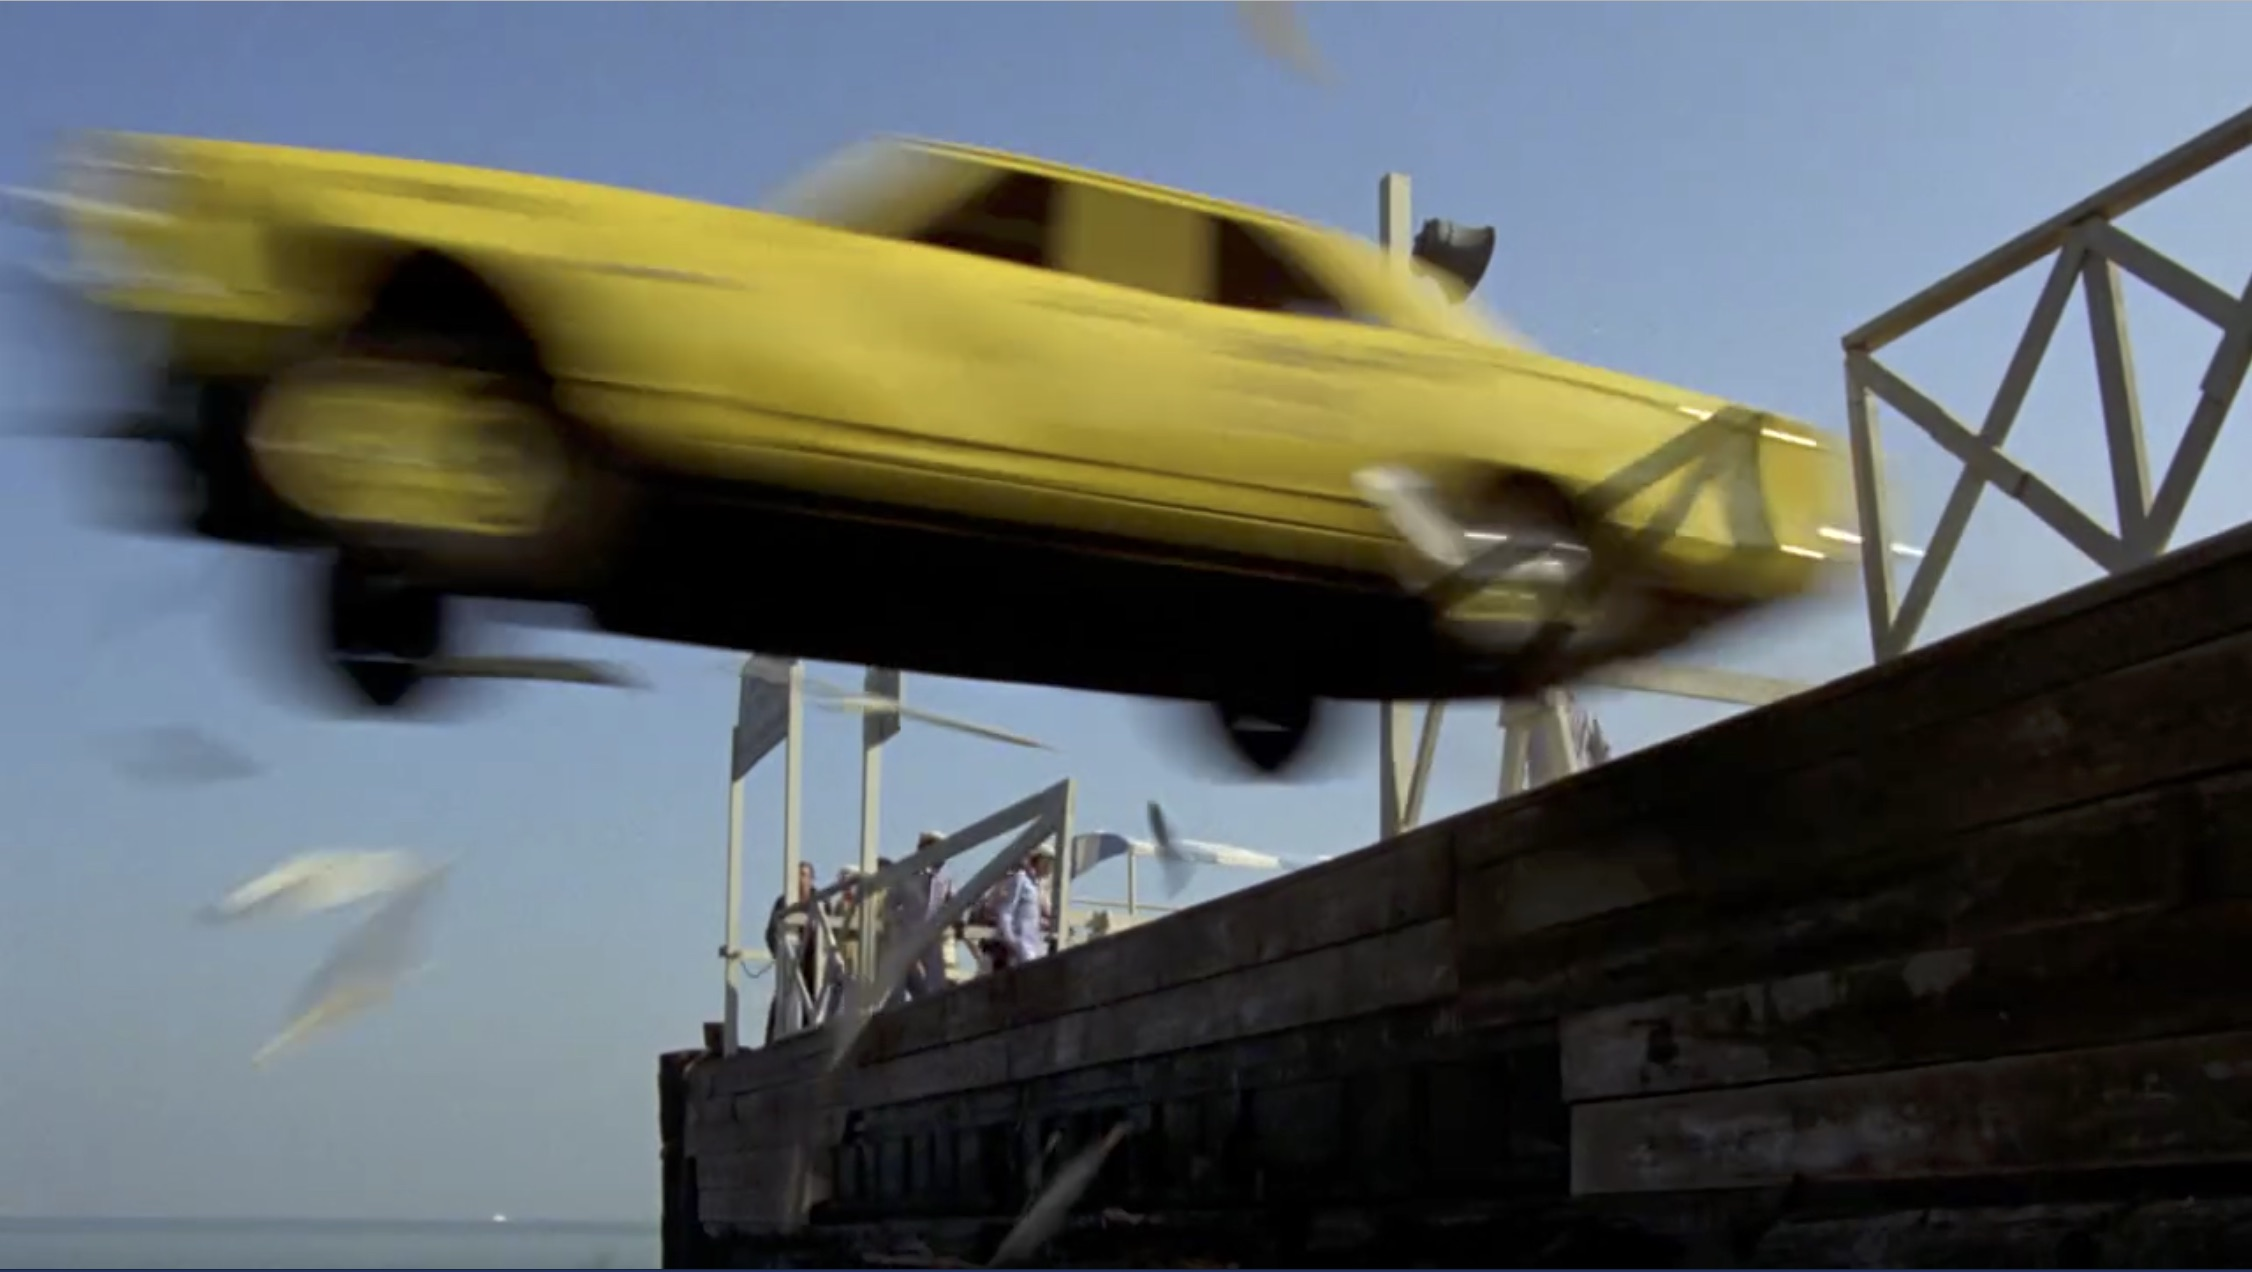 What's Up, Doc? taxi jump into bay